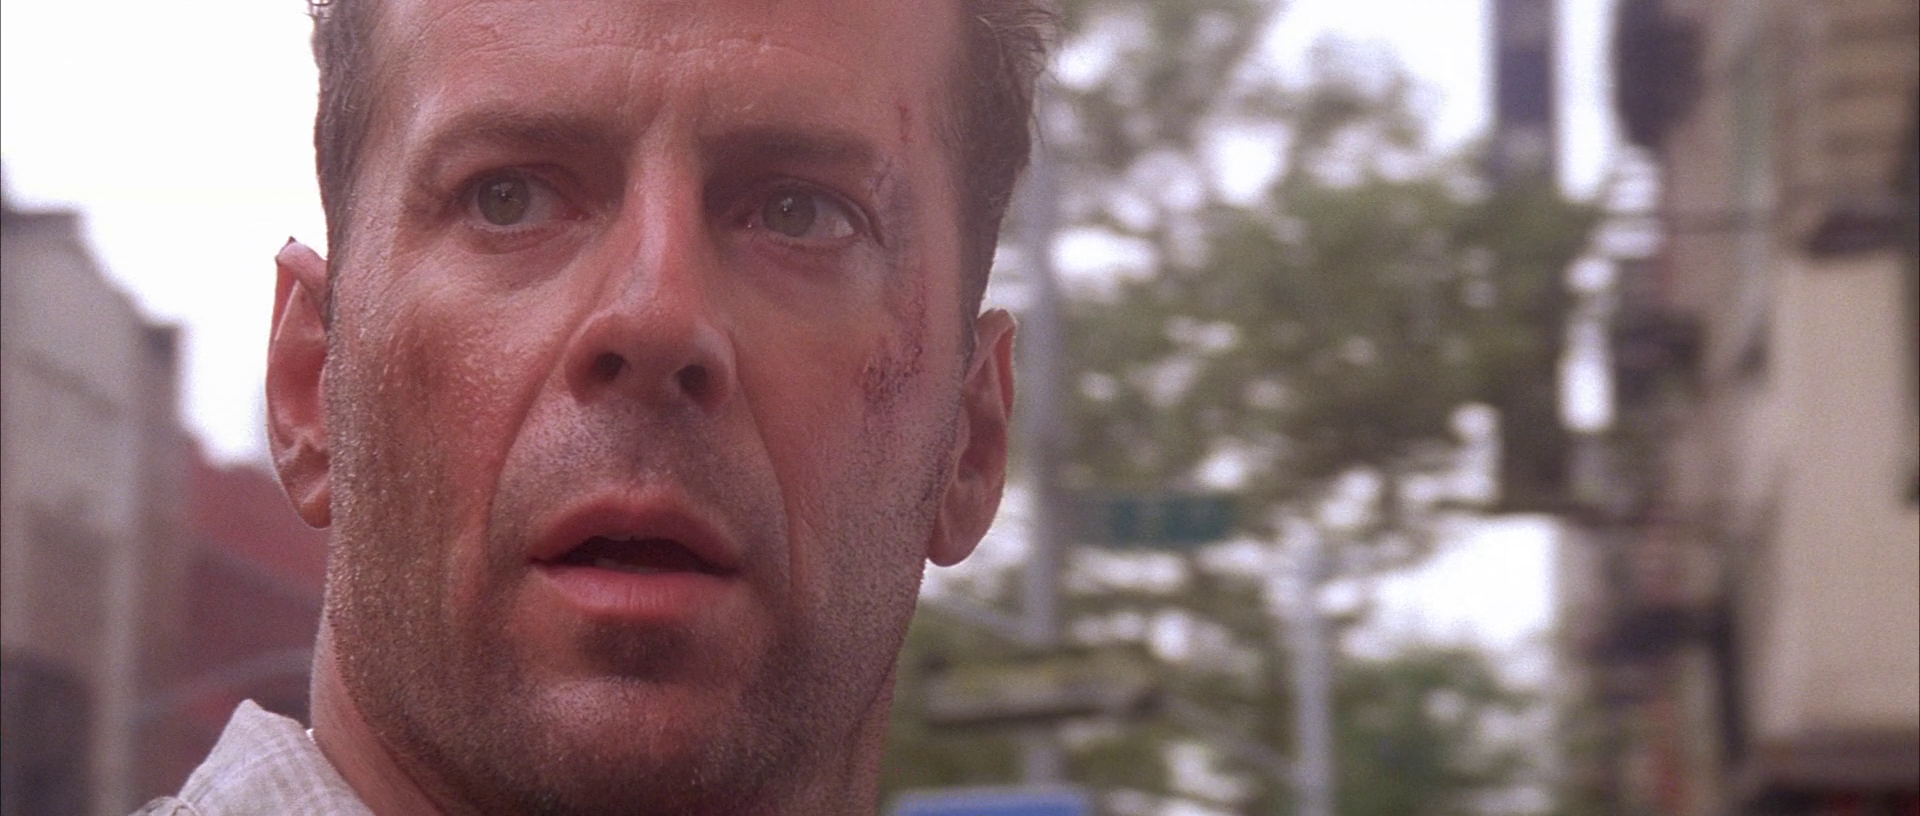 John McClane - Die Hard with a Vengeance